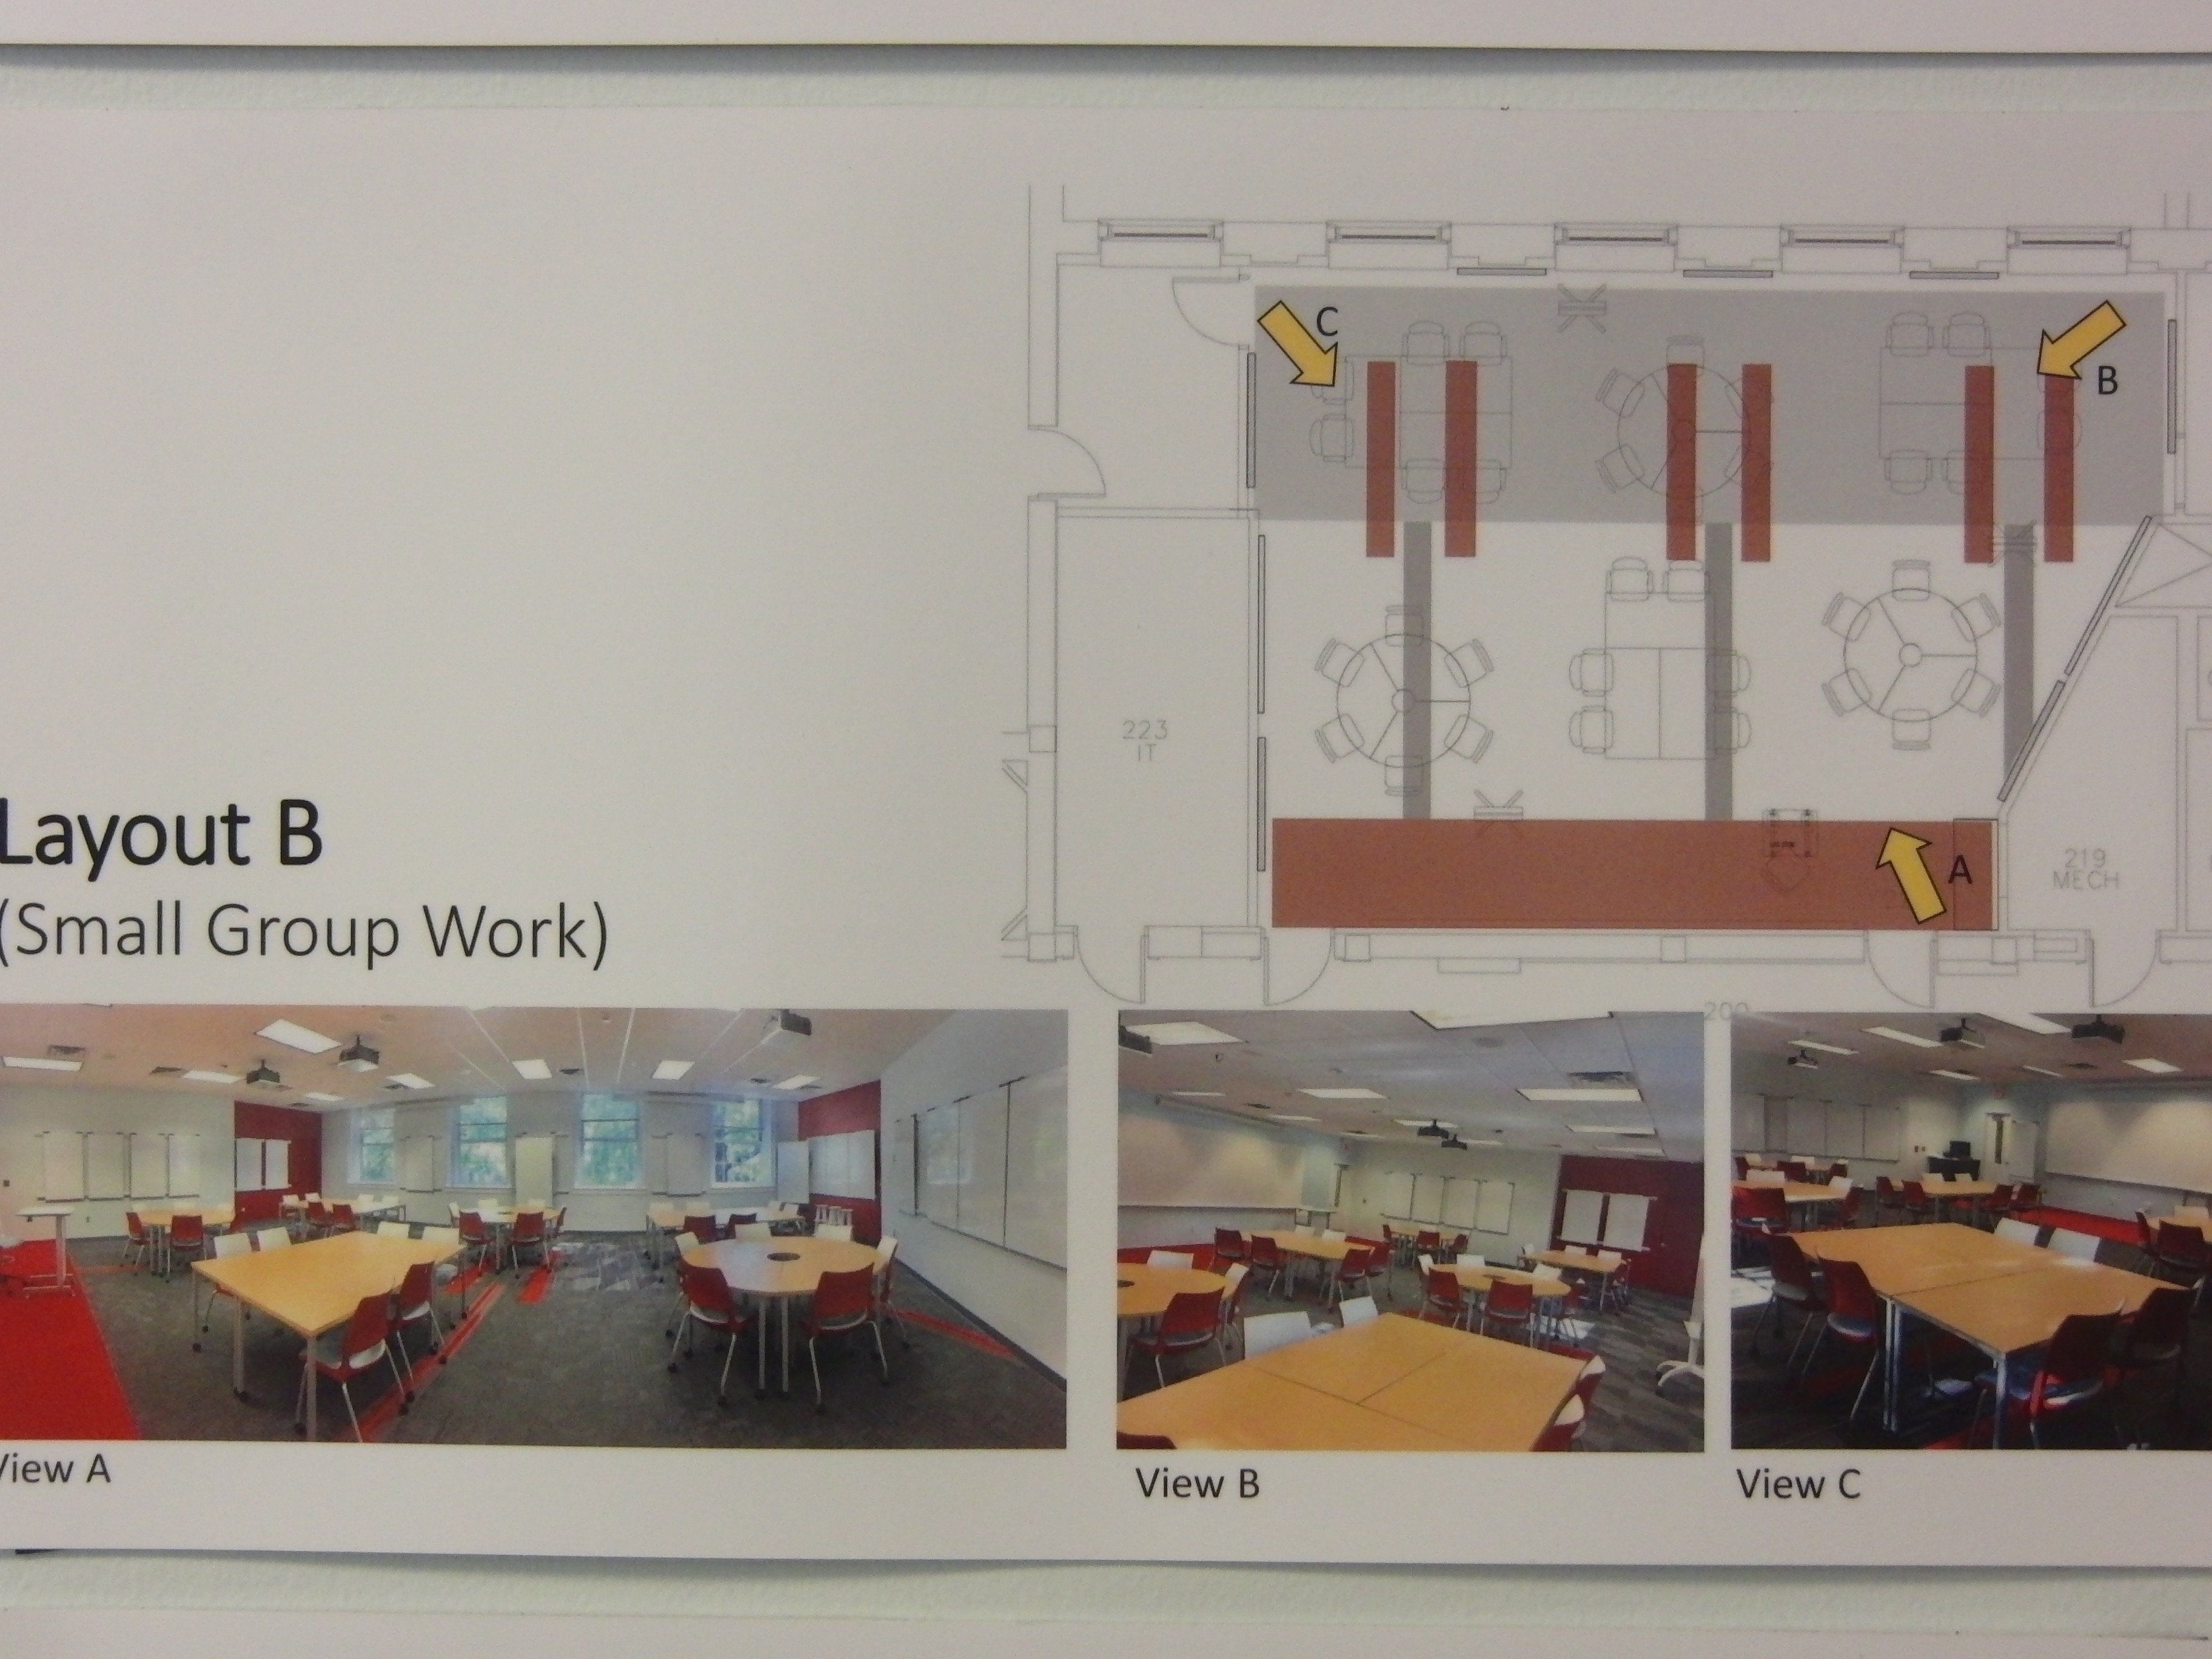 Photo of room configuration for small group work described as layout b